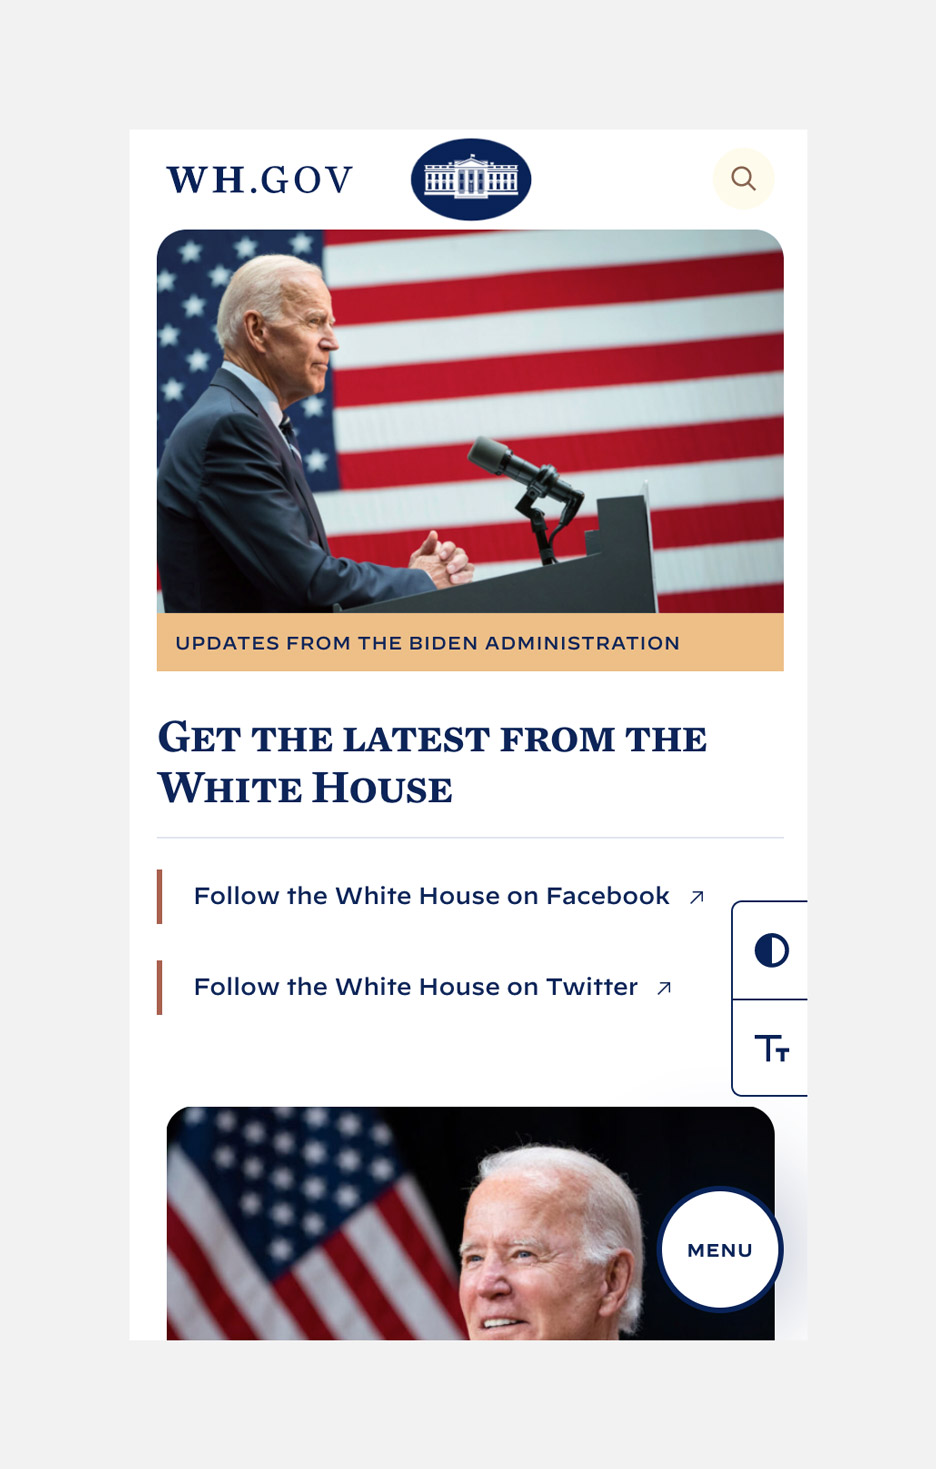 Mobile screen version of the White House rebrand